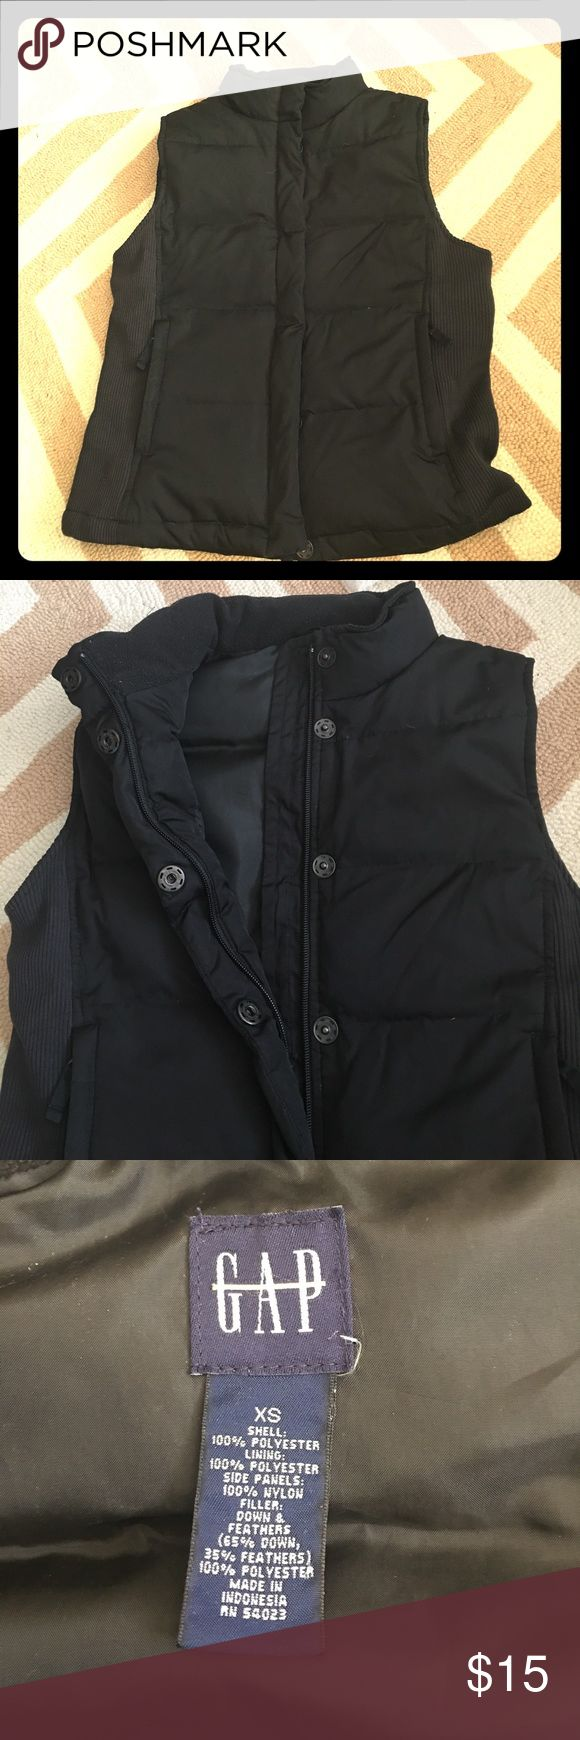 Puffer vest Puffer vest with zip and button front closure; zippered pockets; ribbed side panels, fleece lined collar. Perfect for fall, so comfortable for everyday. Great condition - no rips or stains. Size XS but runs big IMO. Bought from Gap outlet hence tag is crossed out GAP Jackets & Coats Puffers